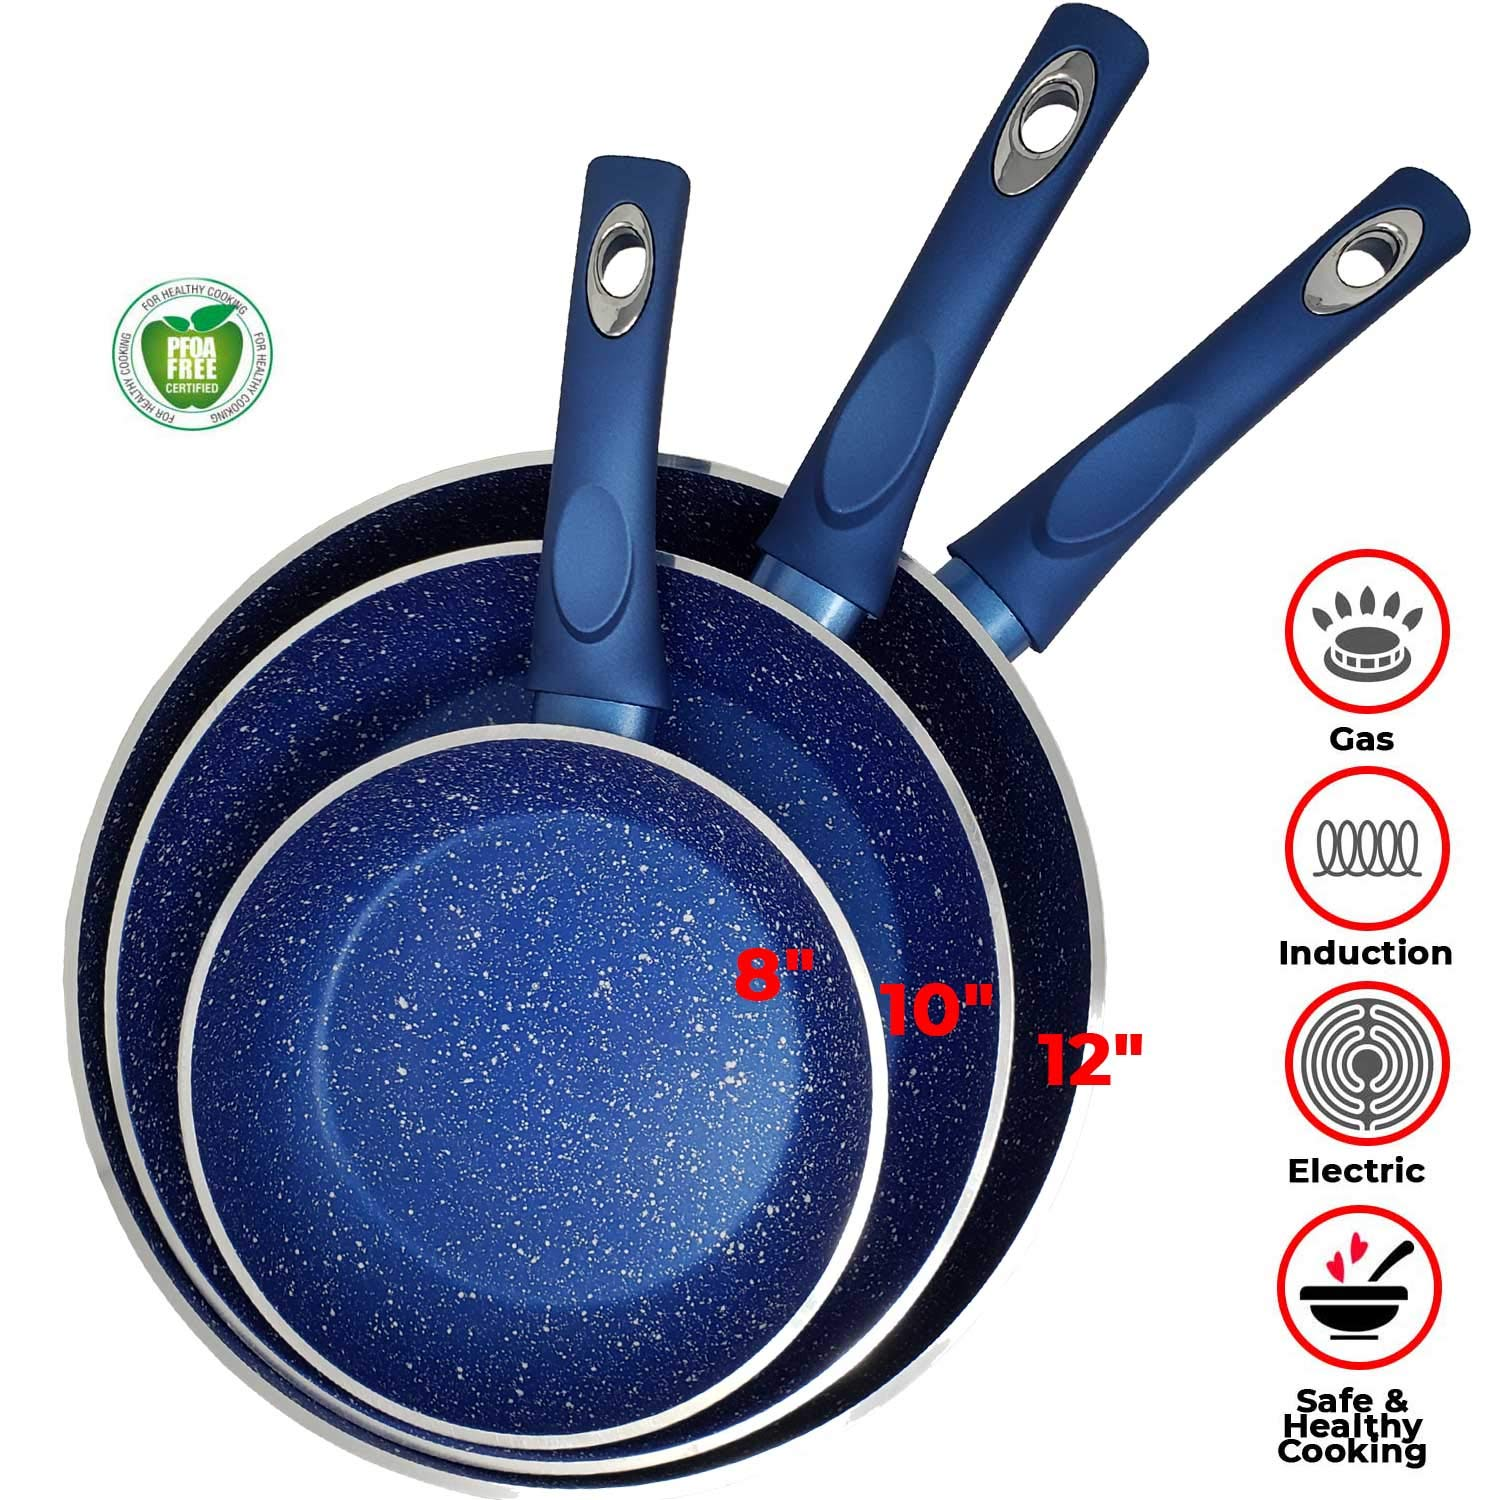 "Non Stick Blue Marble Stone Forged Aluminum Pan Set Granite 4.5mm 6 Layers Non Stick Thickness Induction Bottom & Cool Touch Handle Dishwasher Safe PFOA,PTFE (3pc Set of 12"",10"",8"" Pans)"